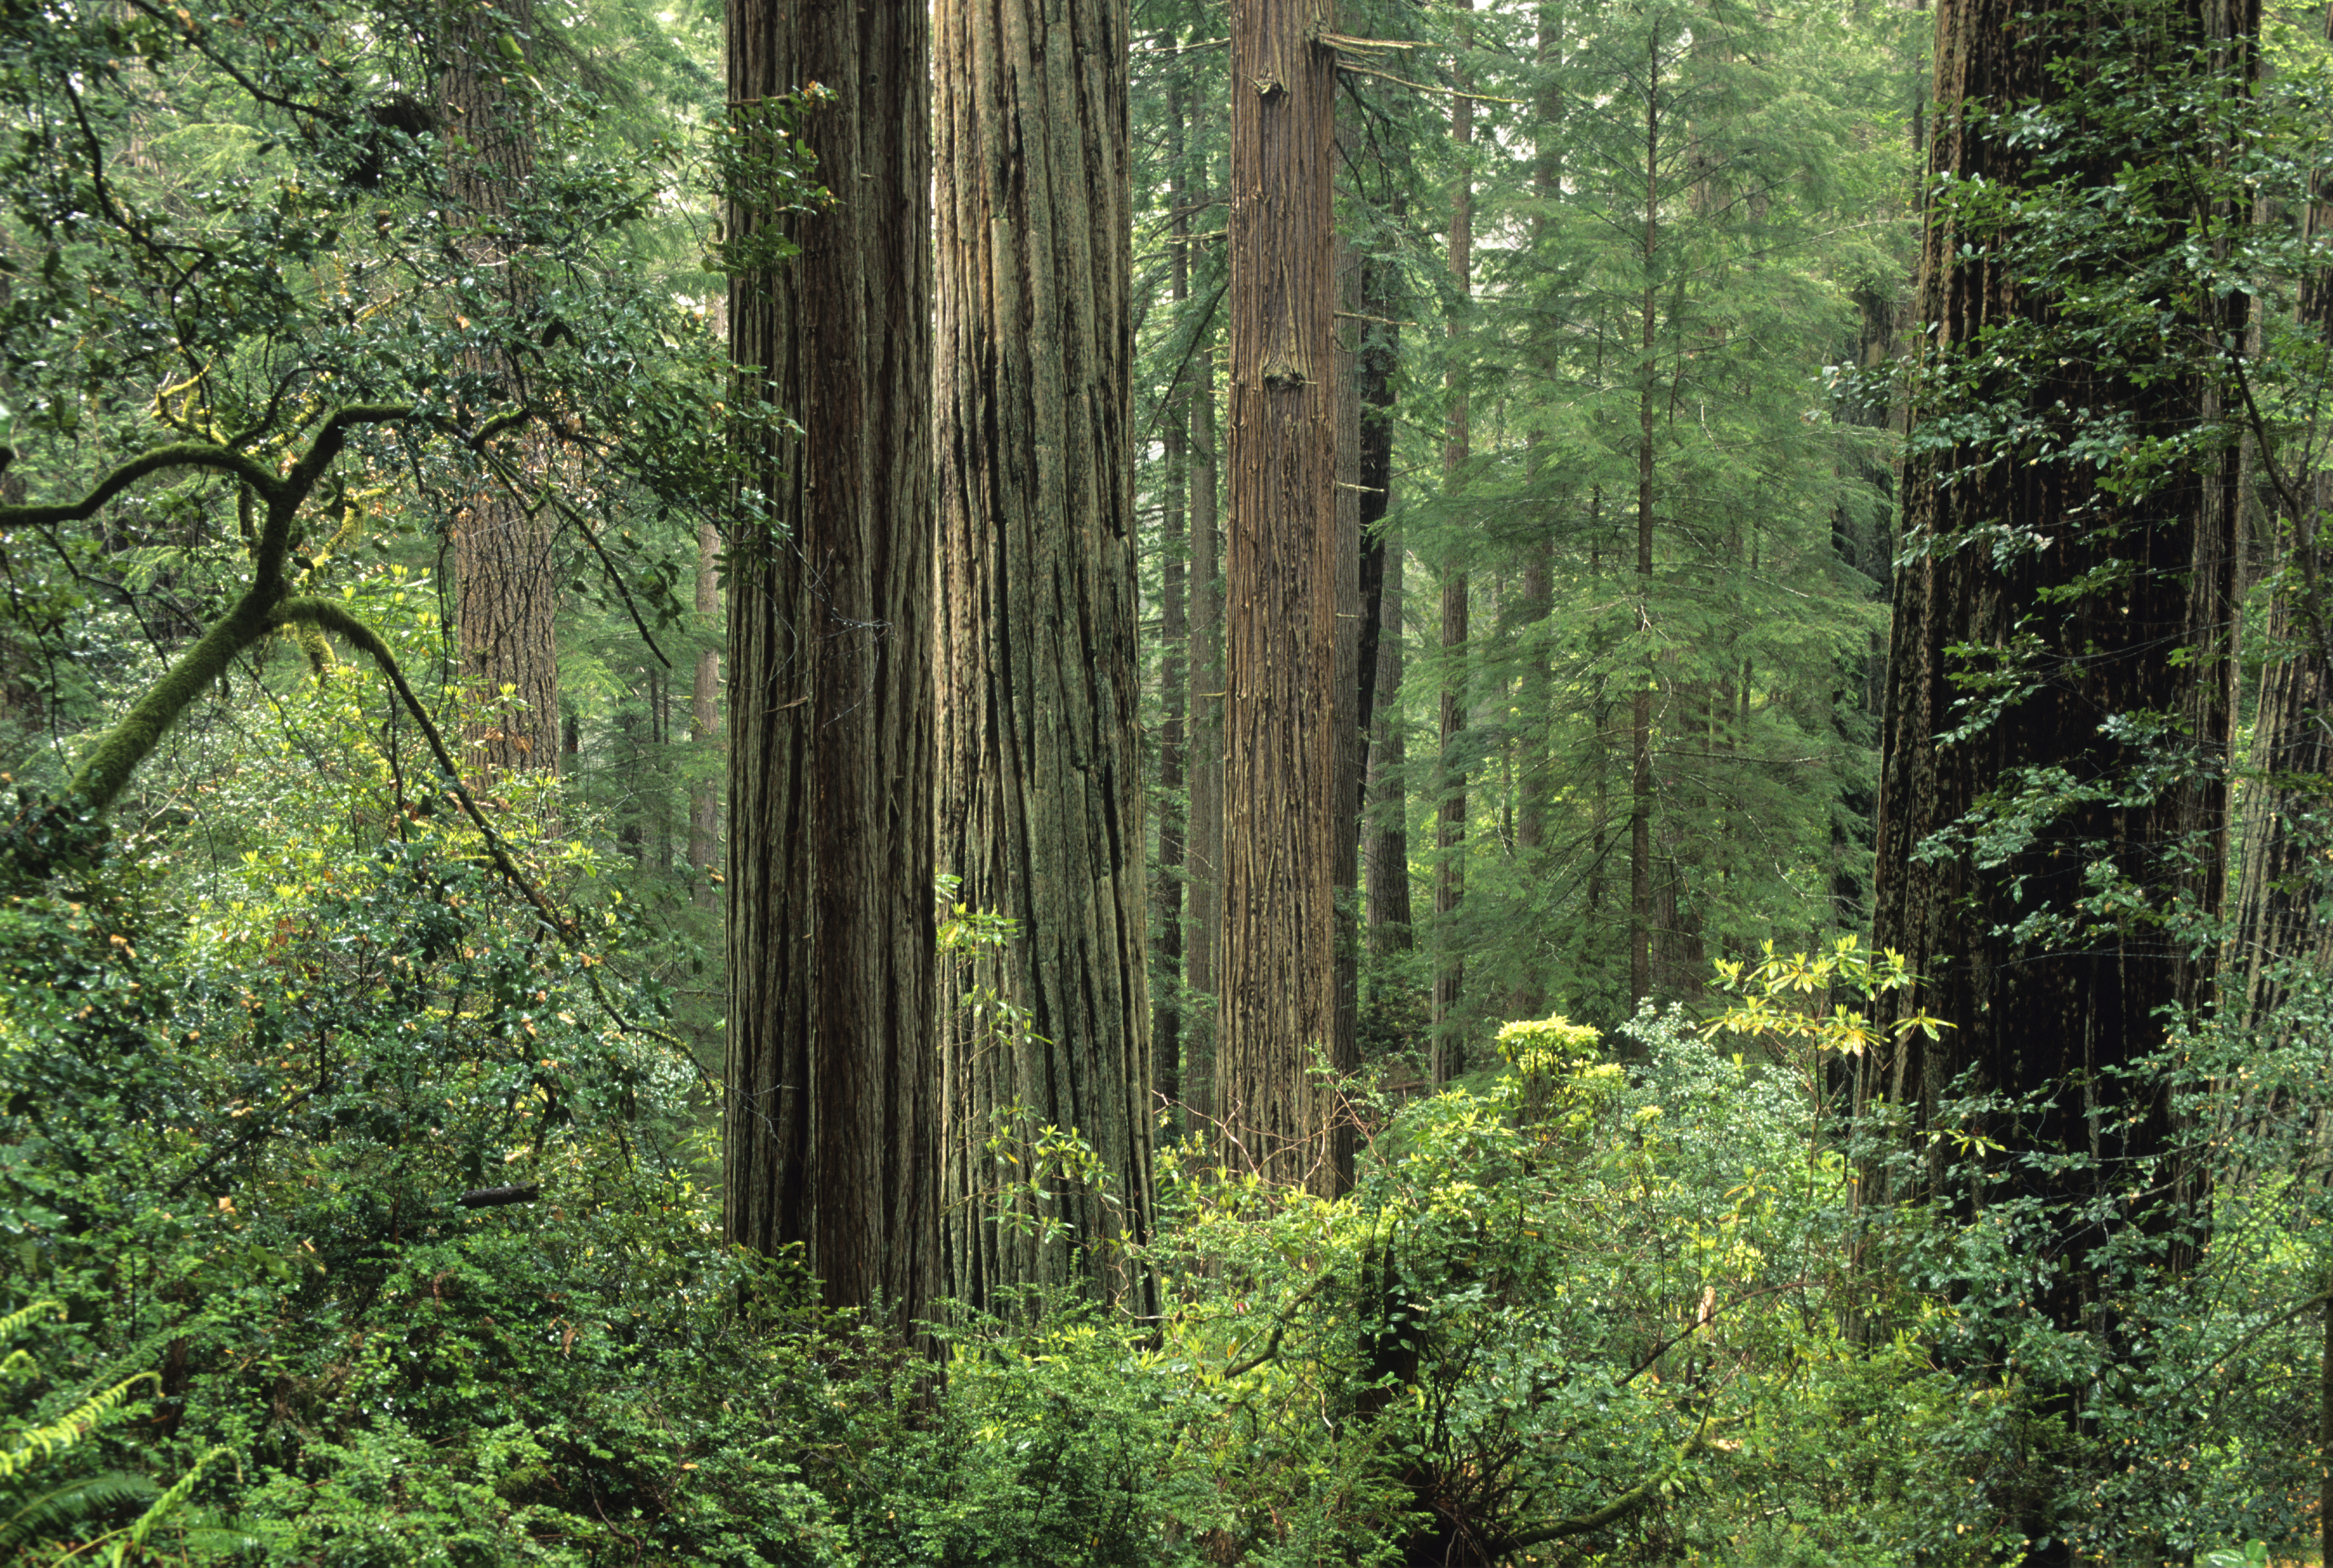 Old-growth coast redwood forest, Sequoia sempervirens, Prairie Creek Redwoods State Park, California, USA